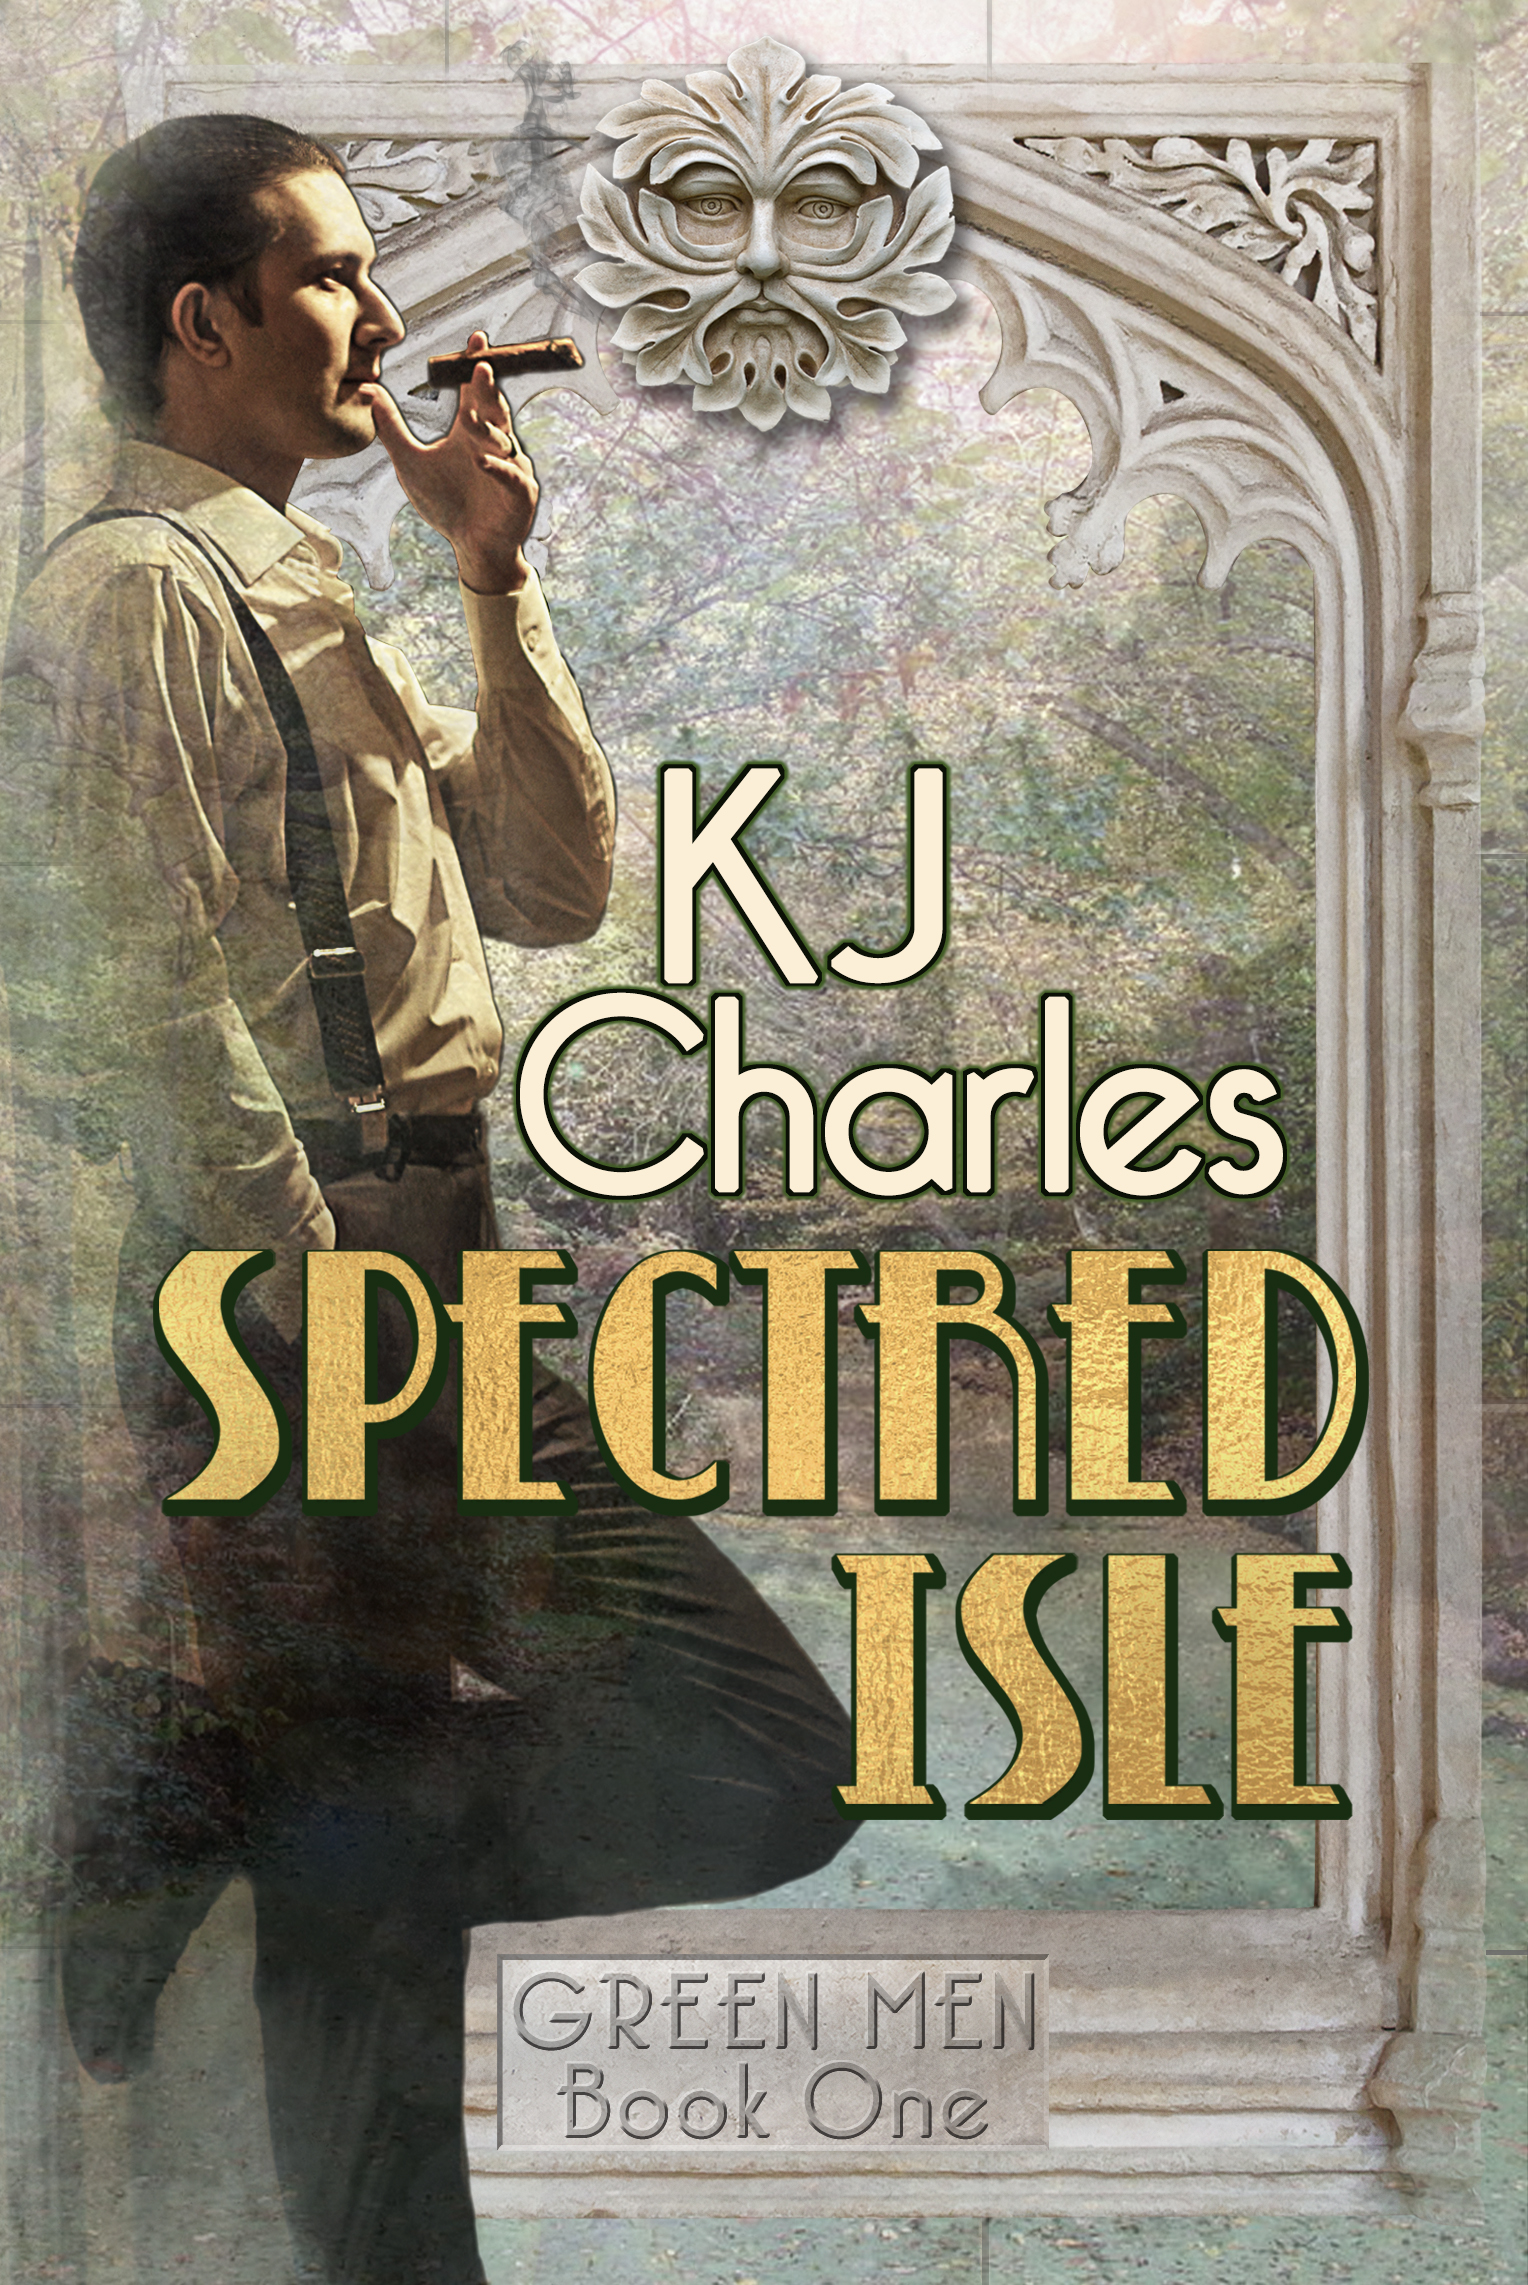 Guest Post: Spectred Isle by K.J. Charles